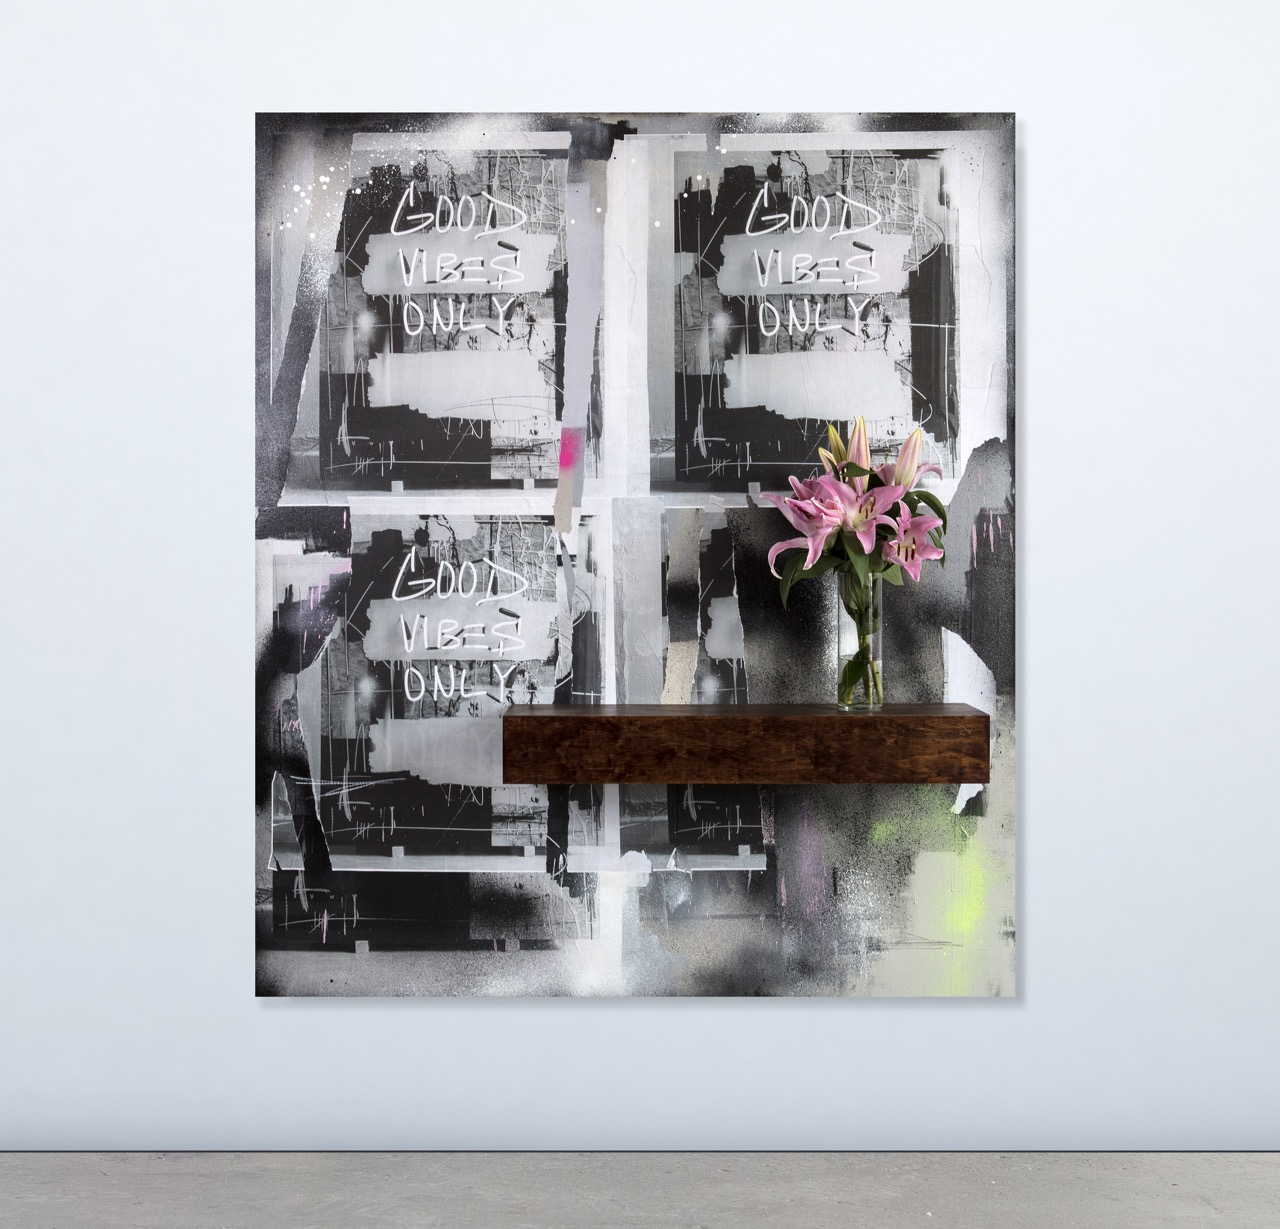 JEREMY BROWN No Bad Energy Please   mixed media on canvas  62 x 72 inches JBR 159G